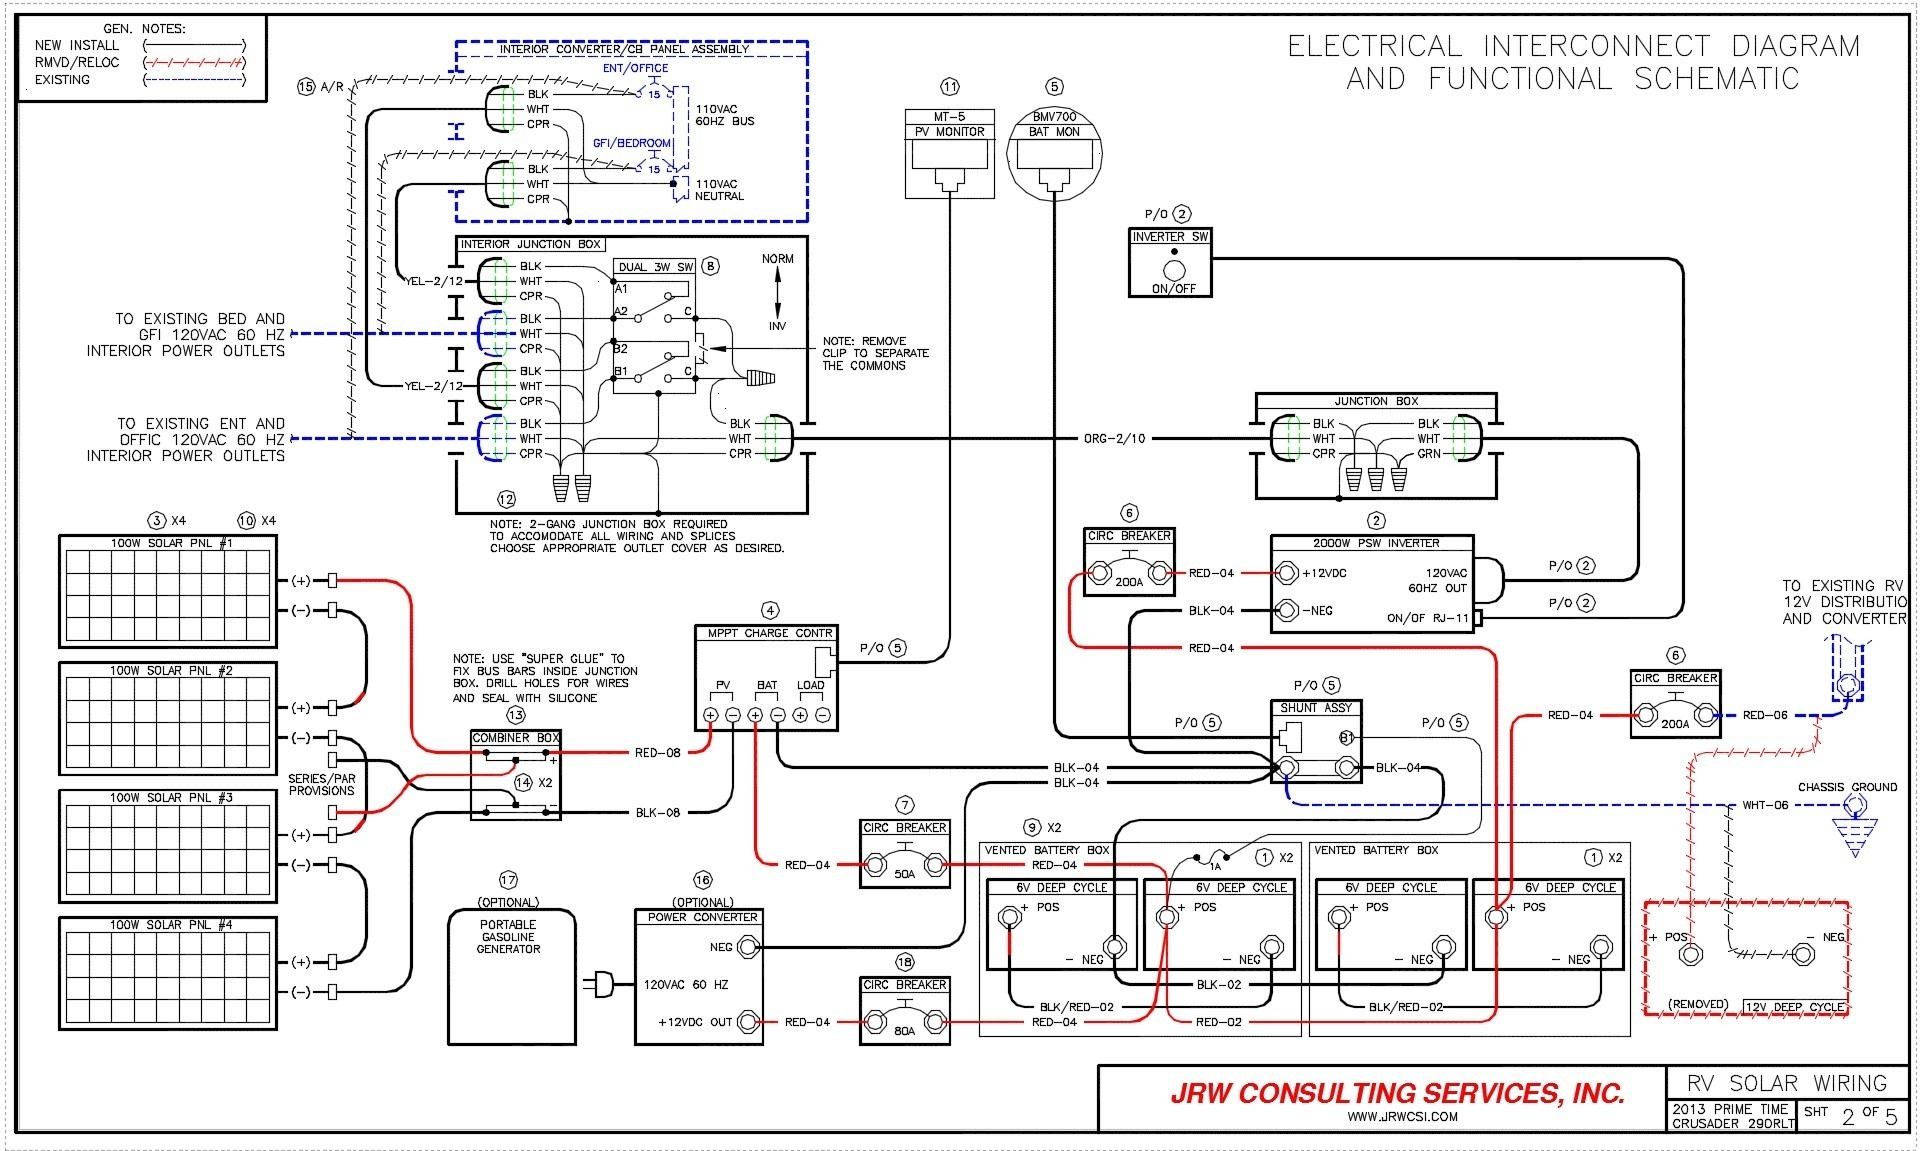 monaco rv wiring diagram Download-monaco rv wiring diagram Download Rv Electrical Wiring Diagram Thoritsolutions 1 j DOWNLOAD Wiring Diagram Detail Name monaco rv 4-q